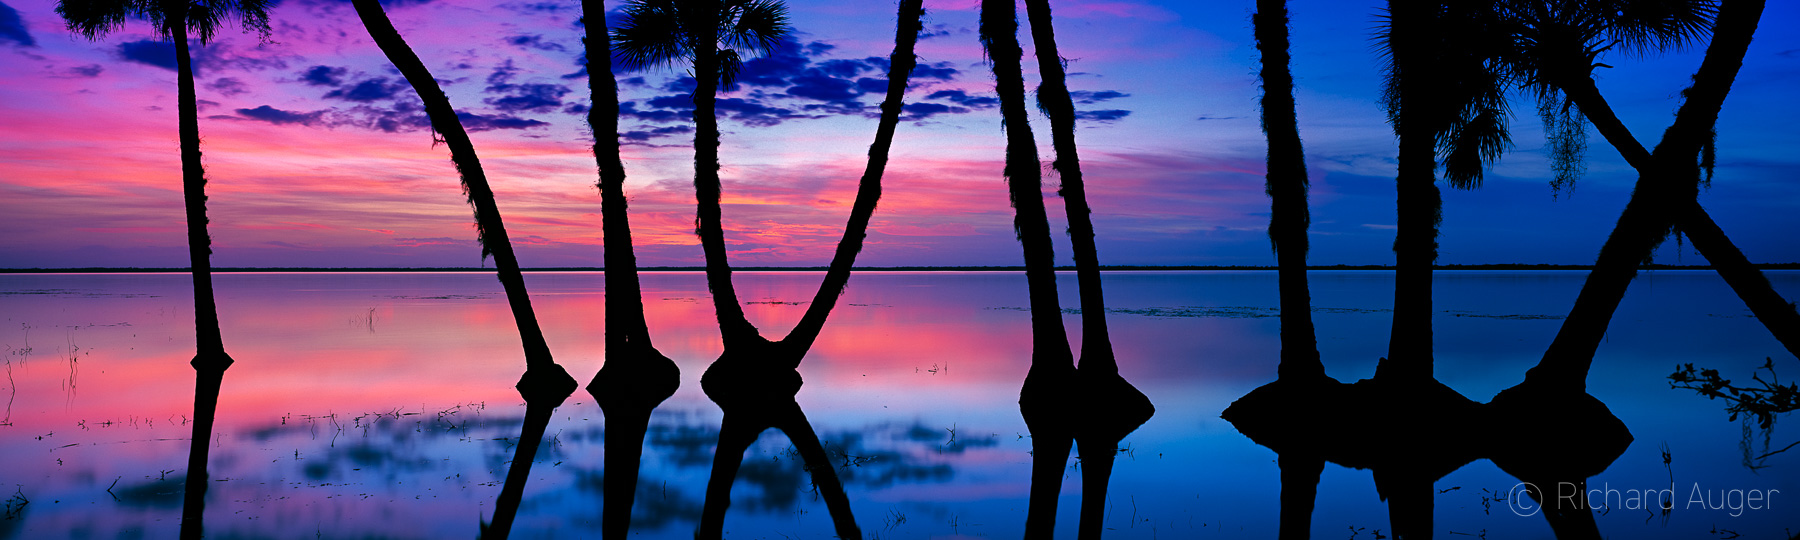 St Johns River, Florida, Lake Harney, Sunset, Silhouette, Palm Trees, Reflections, Water, Panorama, Photograph